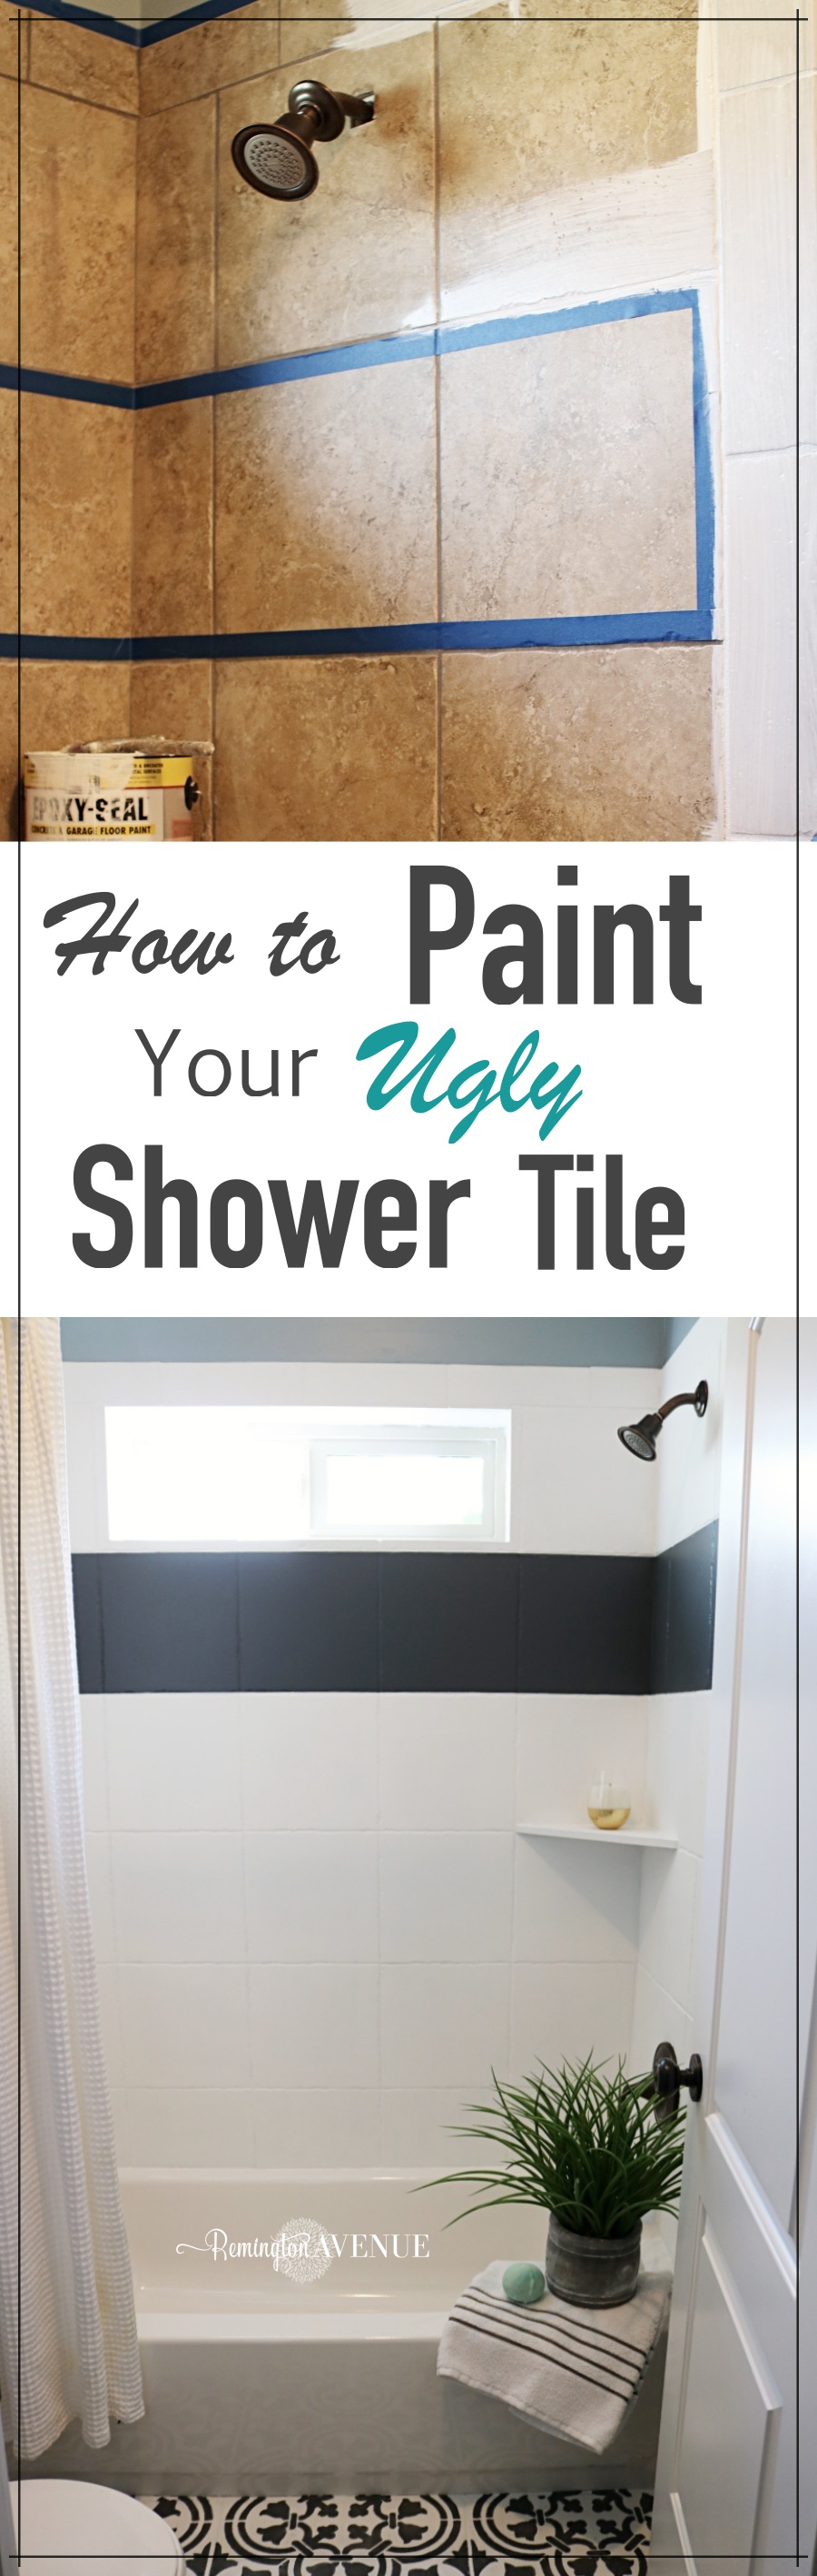 An Easy And Affordable Way To Update Your Bathroom In No Time